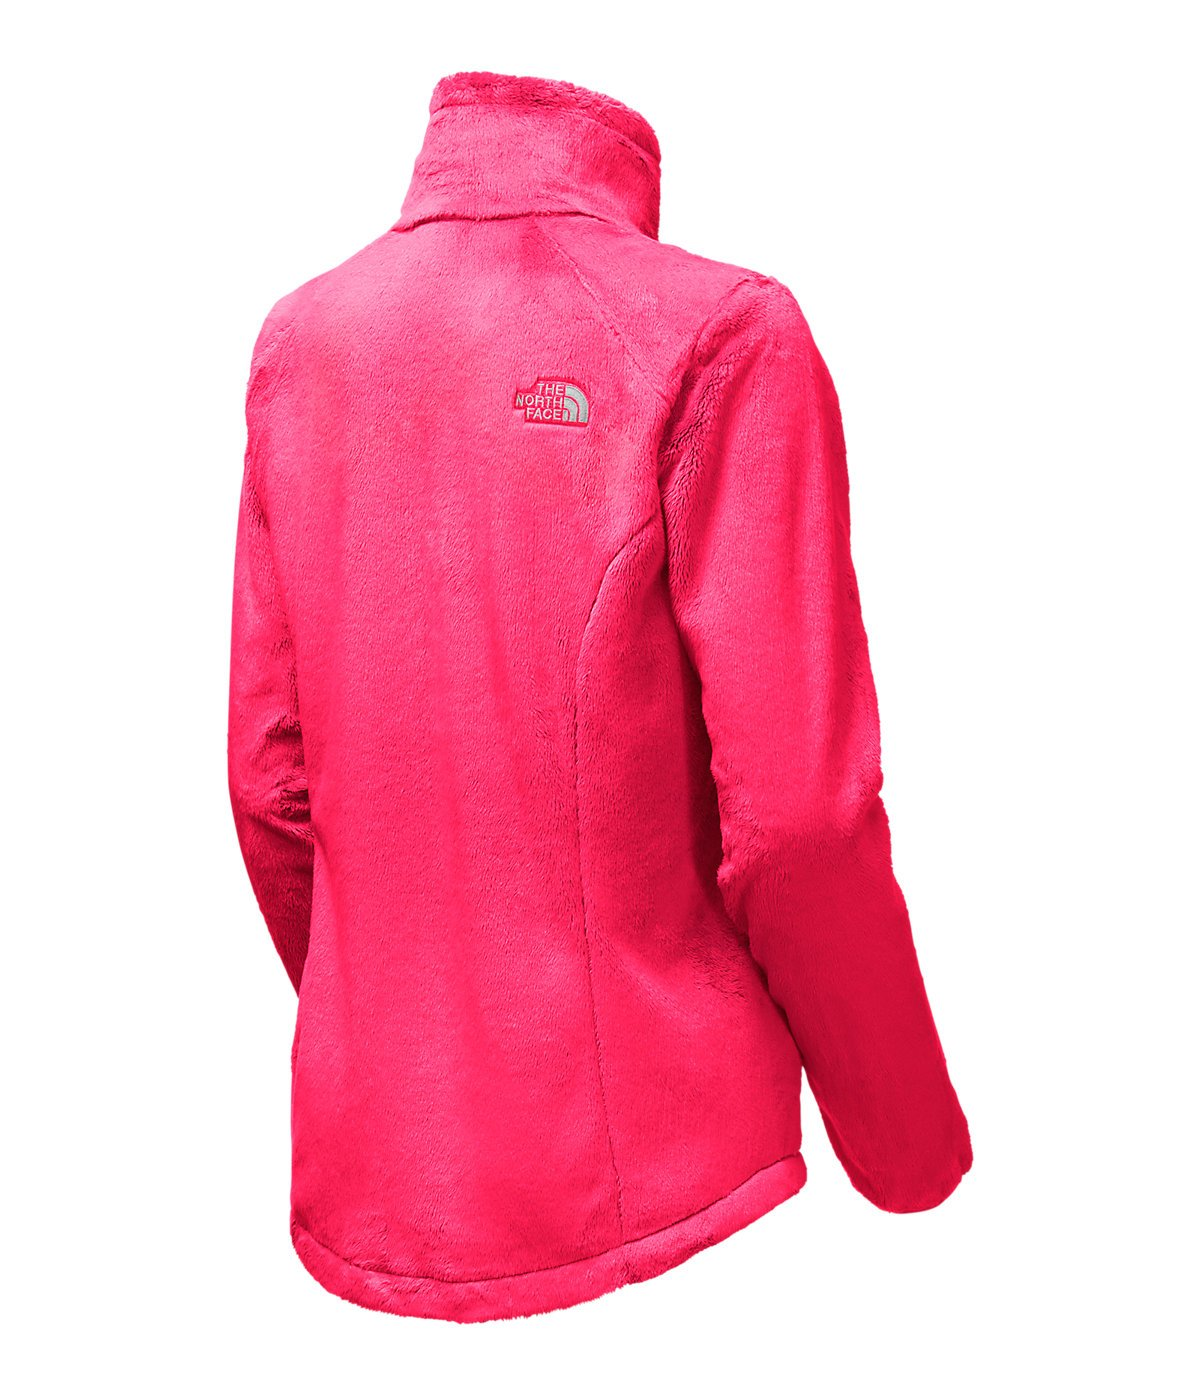 The North Face Women's Osito 2 Jacket Honeysuckle Pink XXL